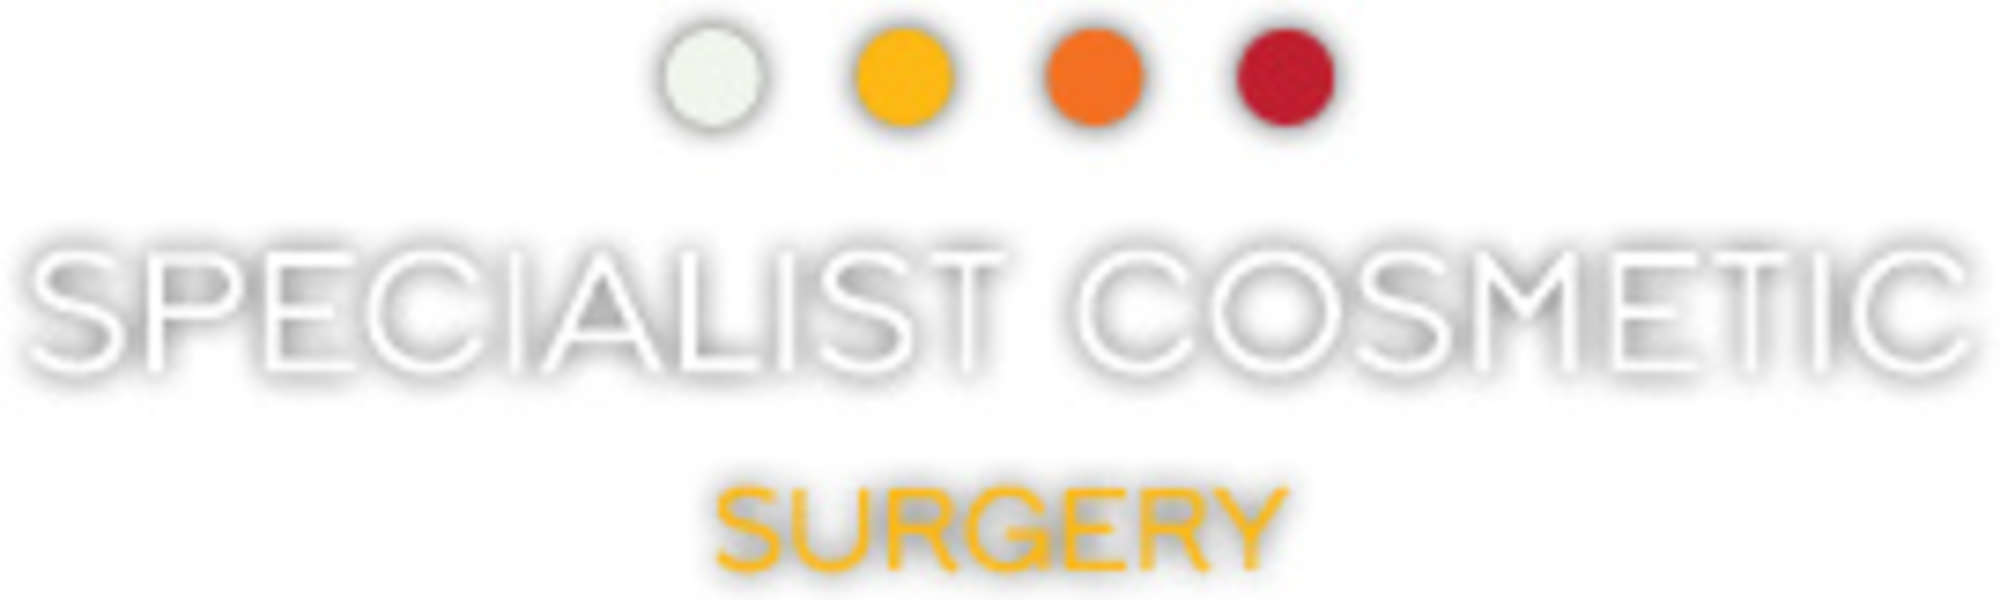 Specialist Cosmetic Surgery Sydney